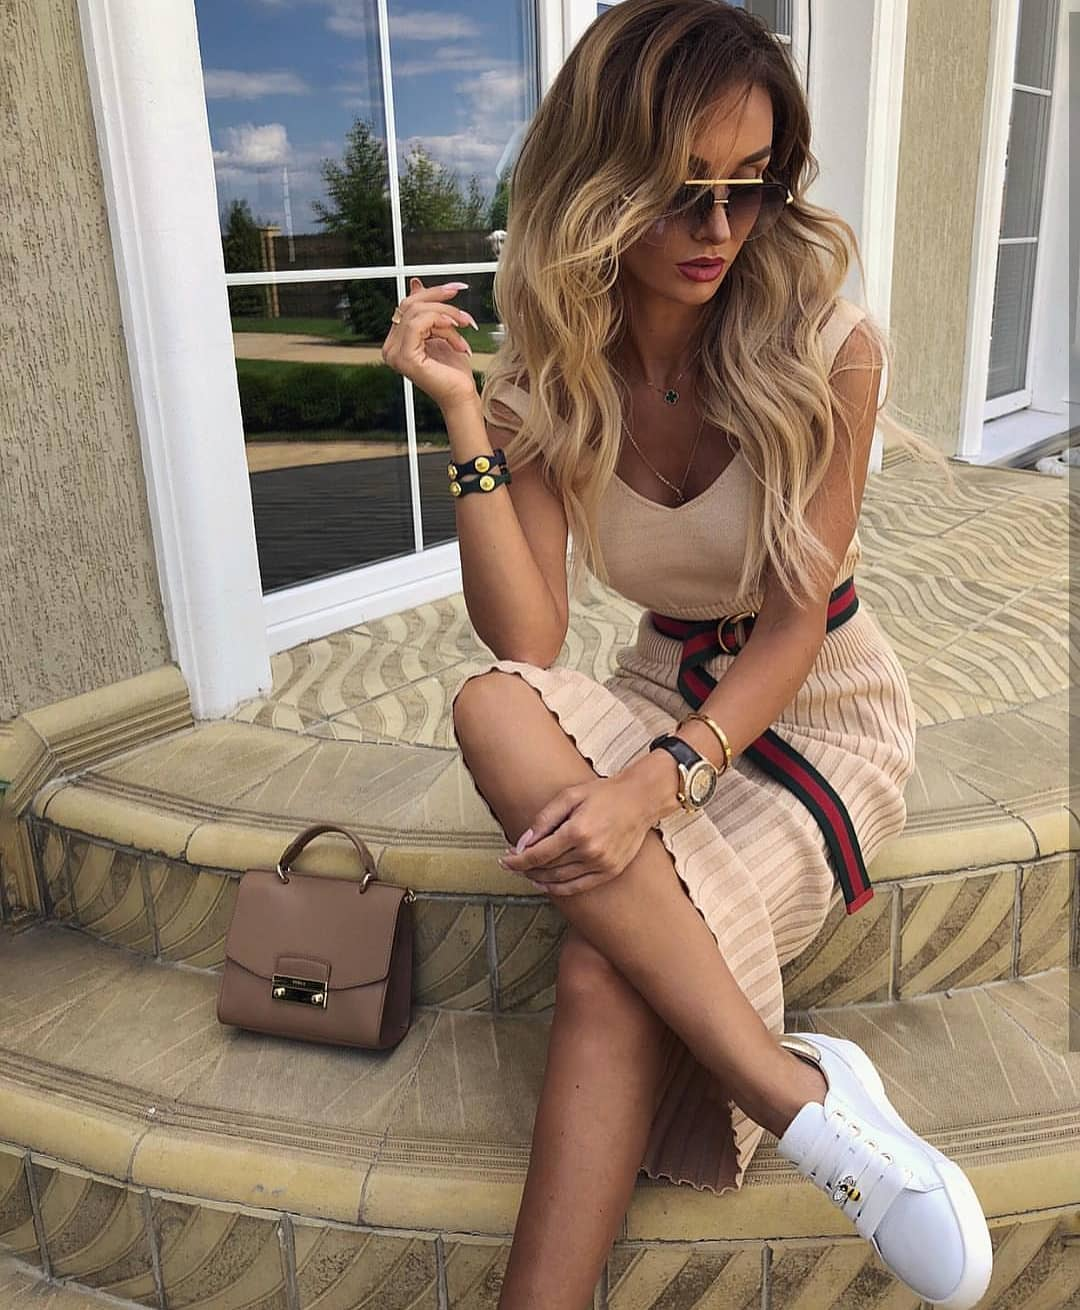 Beige Knitted Tank Dress With A Belt And White Sneakers For Summer 2020